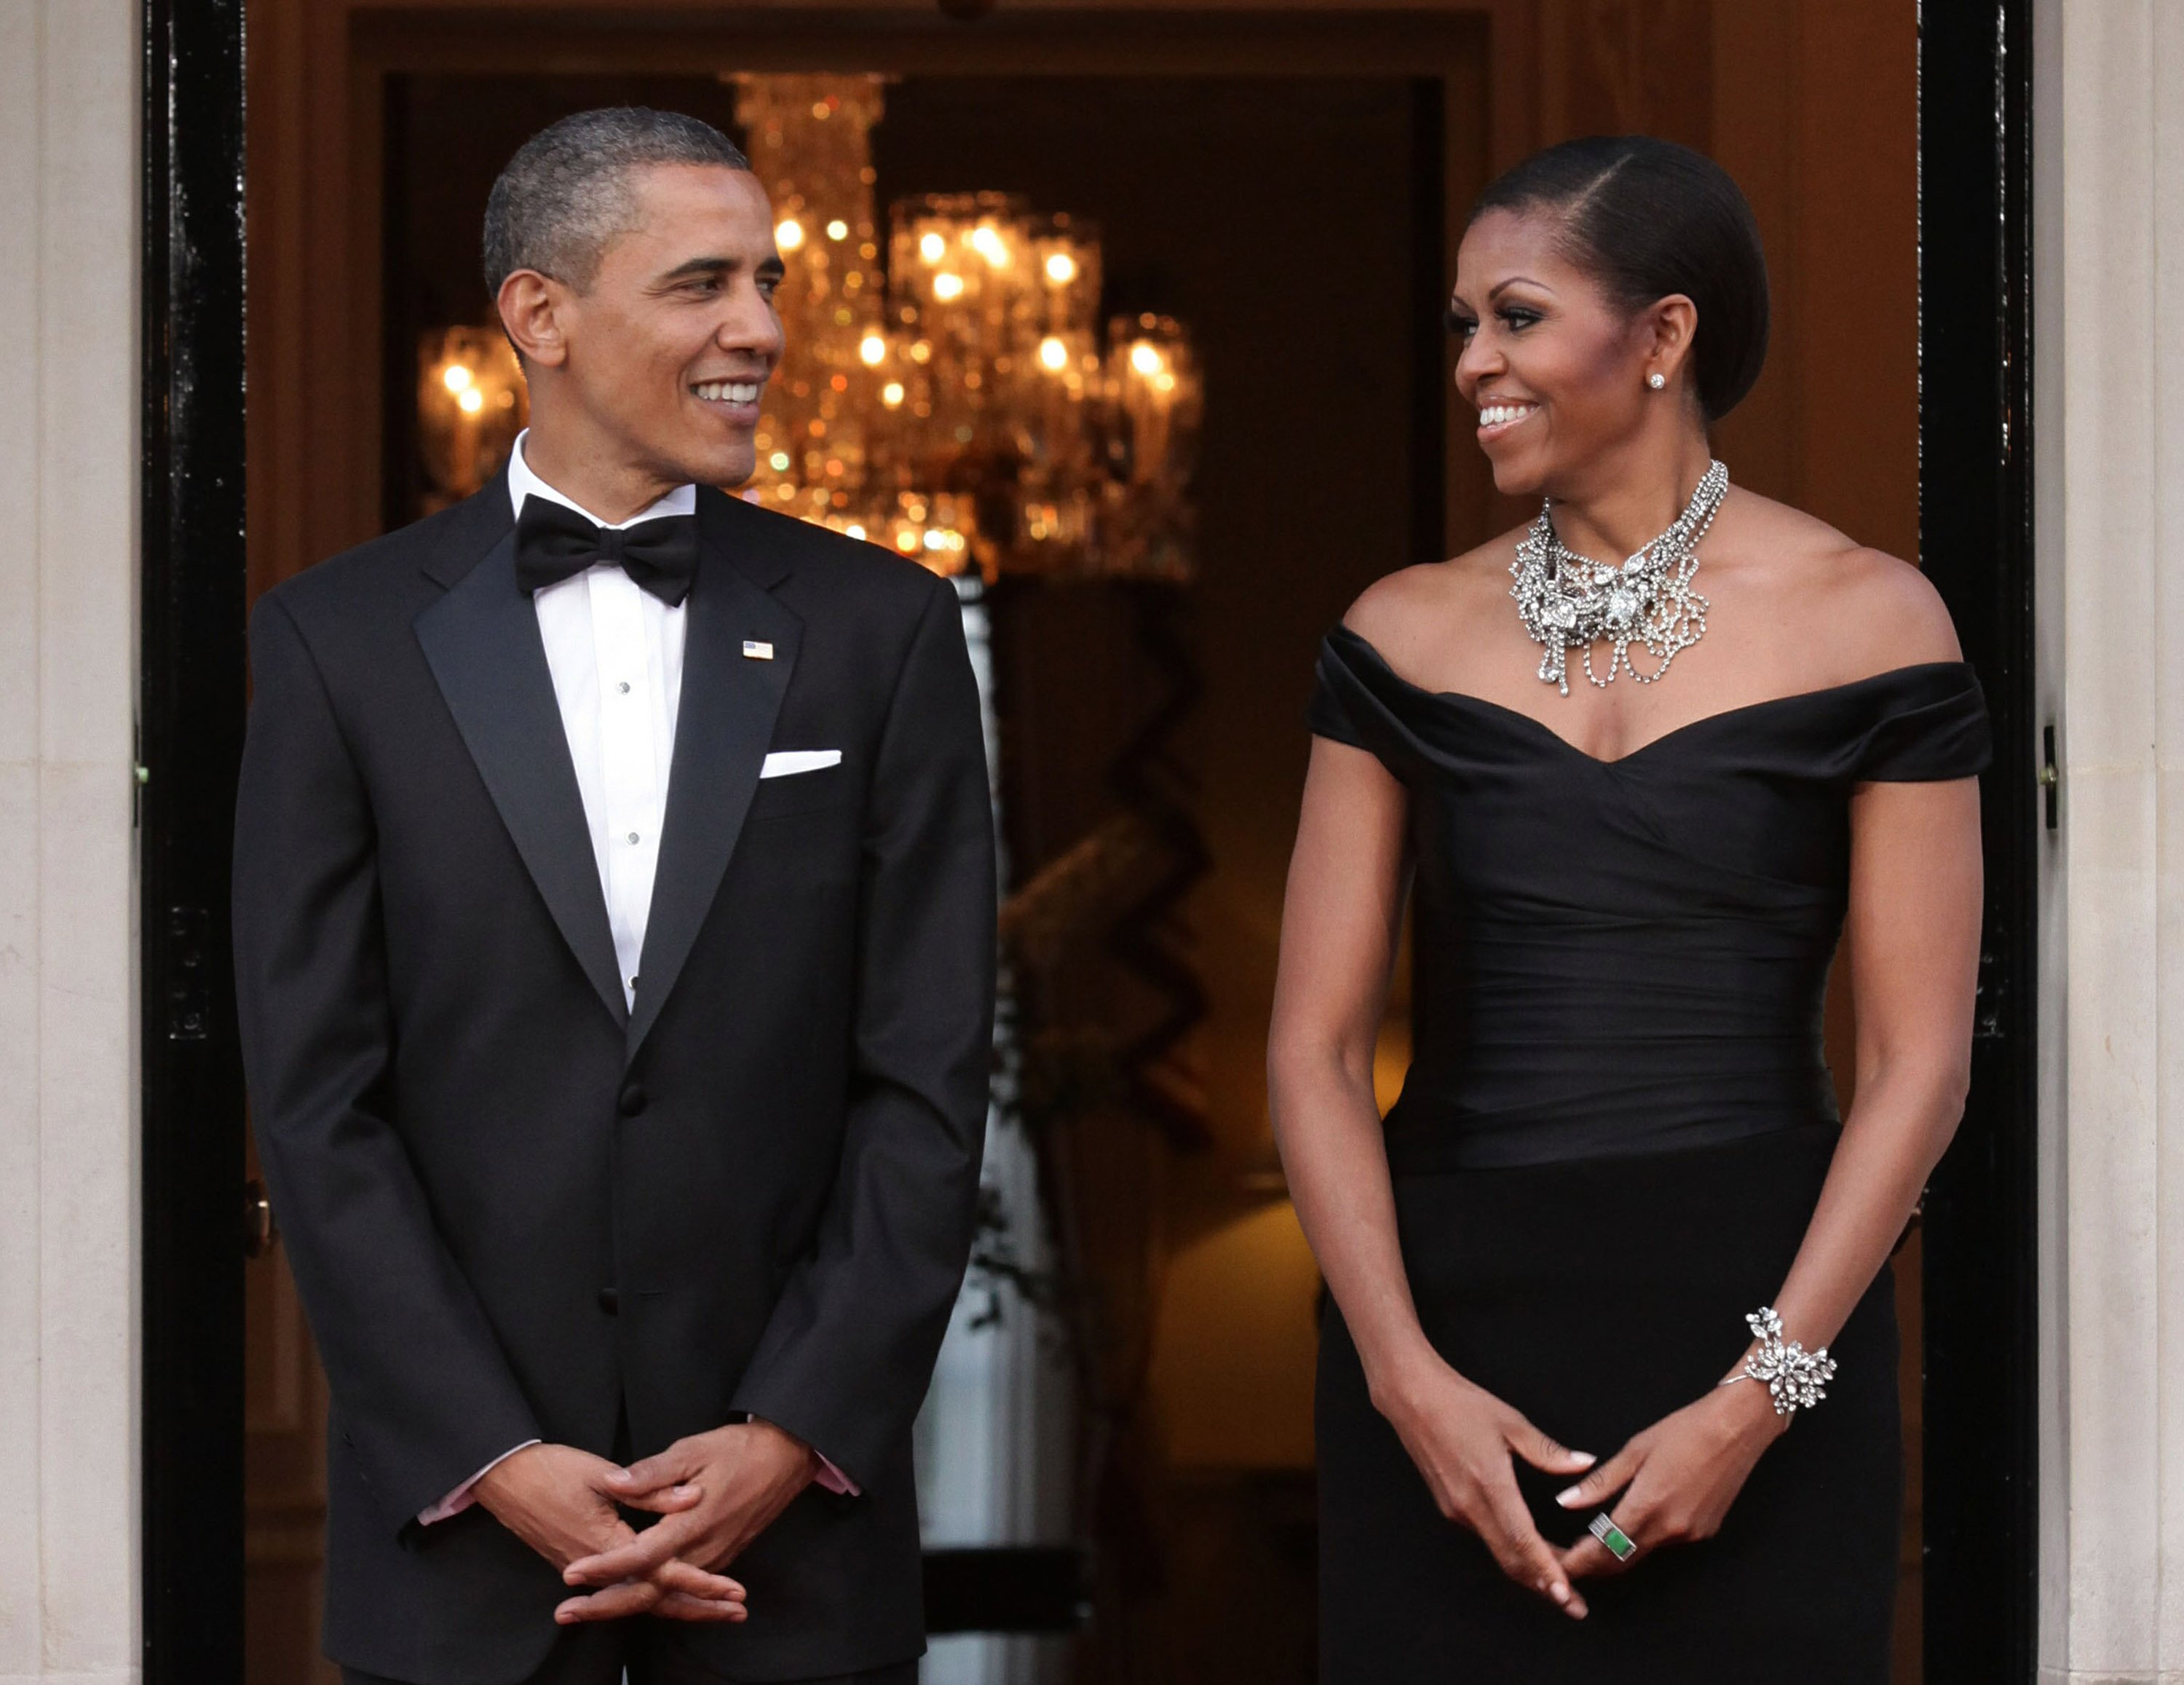 Getty Images / Barack and Michelle Obama in Regent's Park In This Photo: Michelle Obama, Barack Obama President Barack Obama and First Lady Michelle Obama welcome Queen Elizabeth and Prince Philip, Duke of Edinburgh, at Winfield House in Regent's Park for their farewell dinner on May 26, 2011